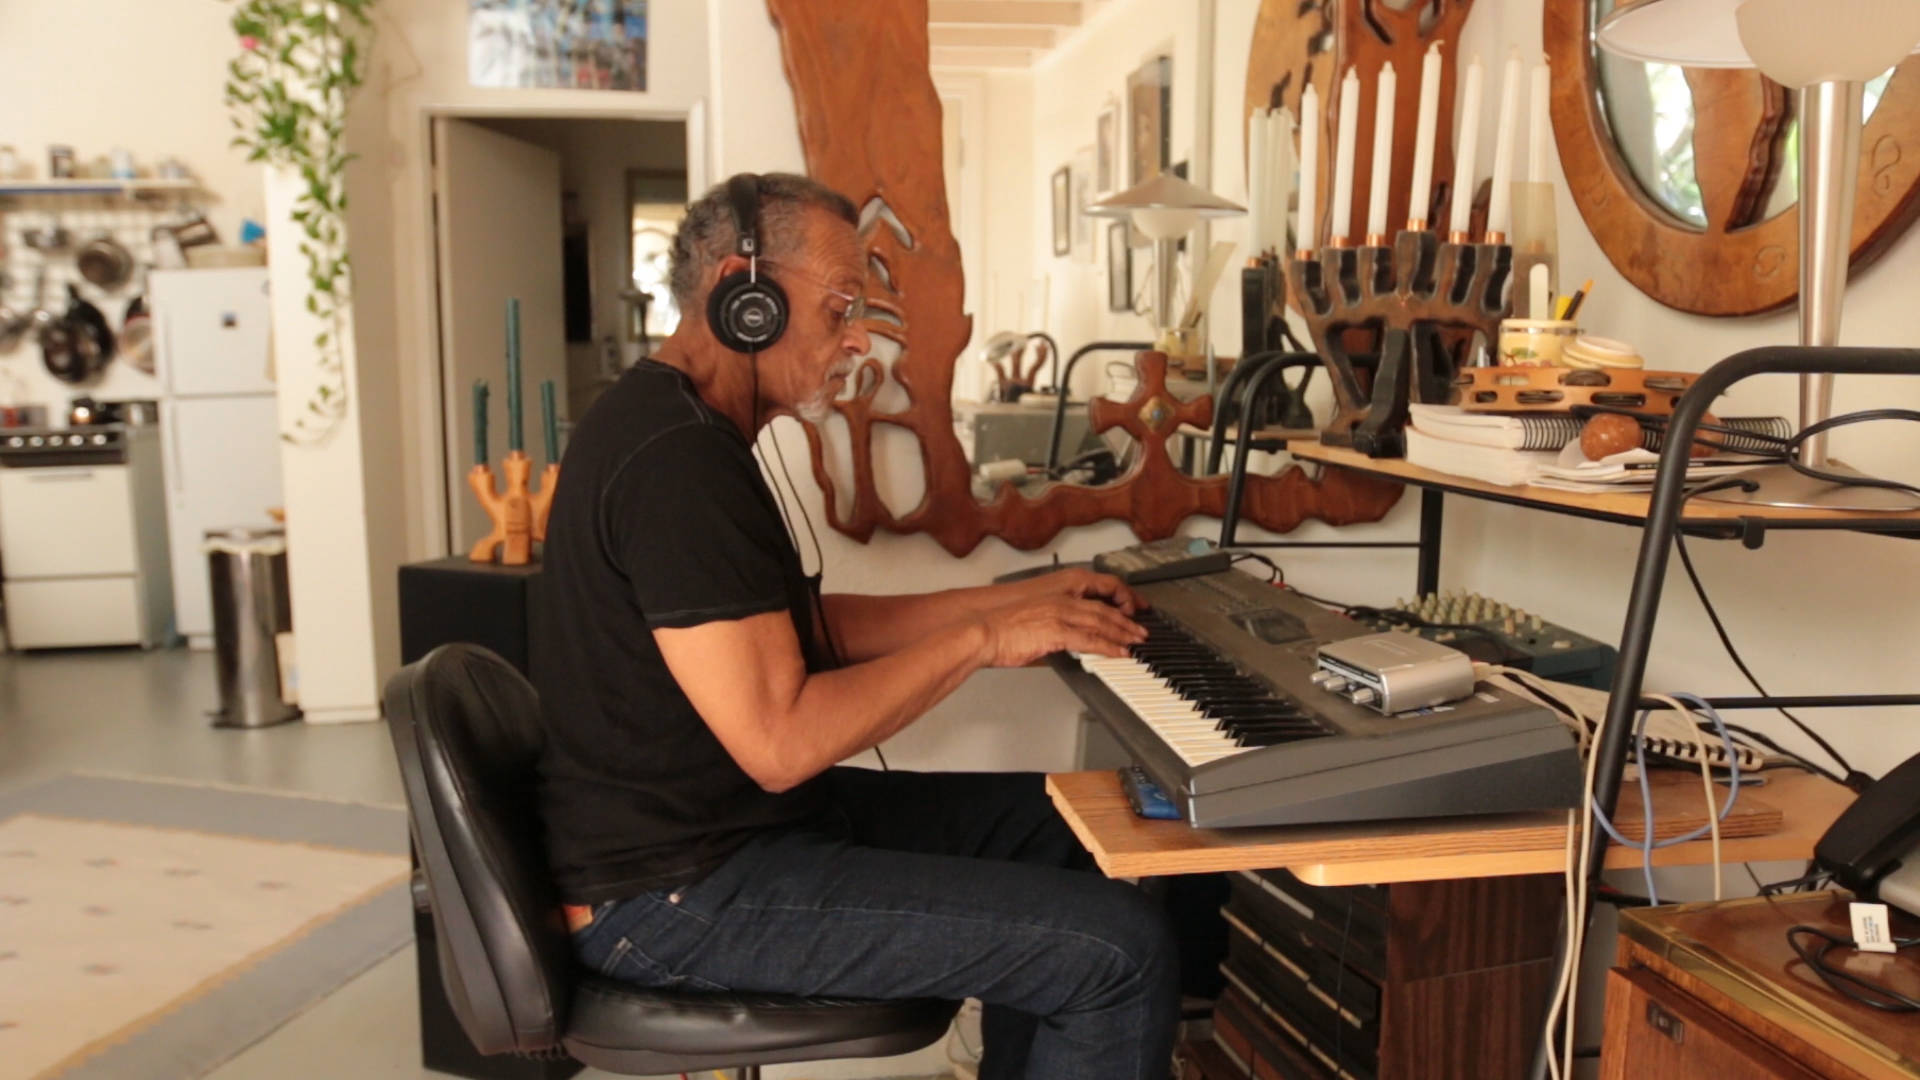 Tony Breaux has lived in his loft apartment since 2004.